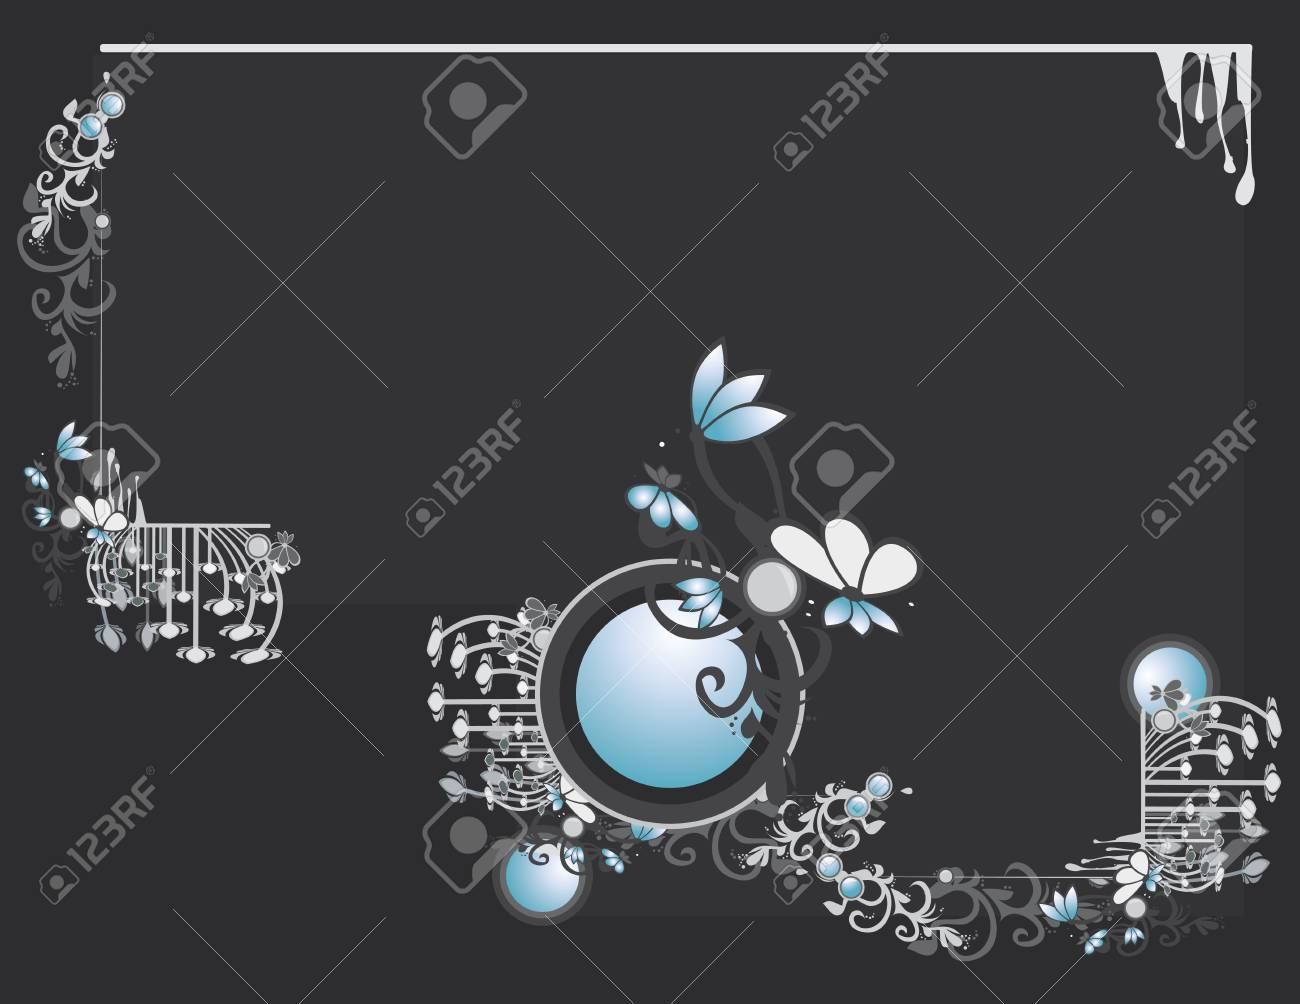 Gray blue abstract frame and background with circular elements Stock Vector - 7315149